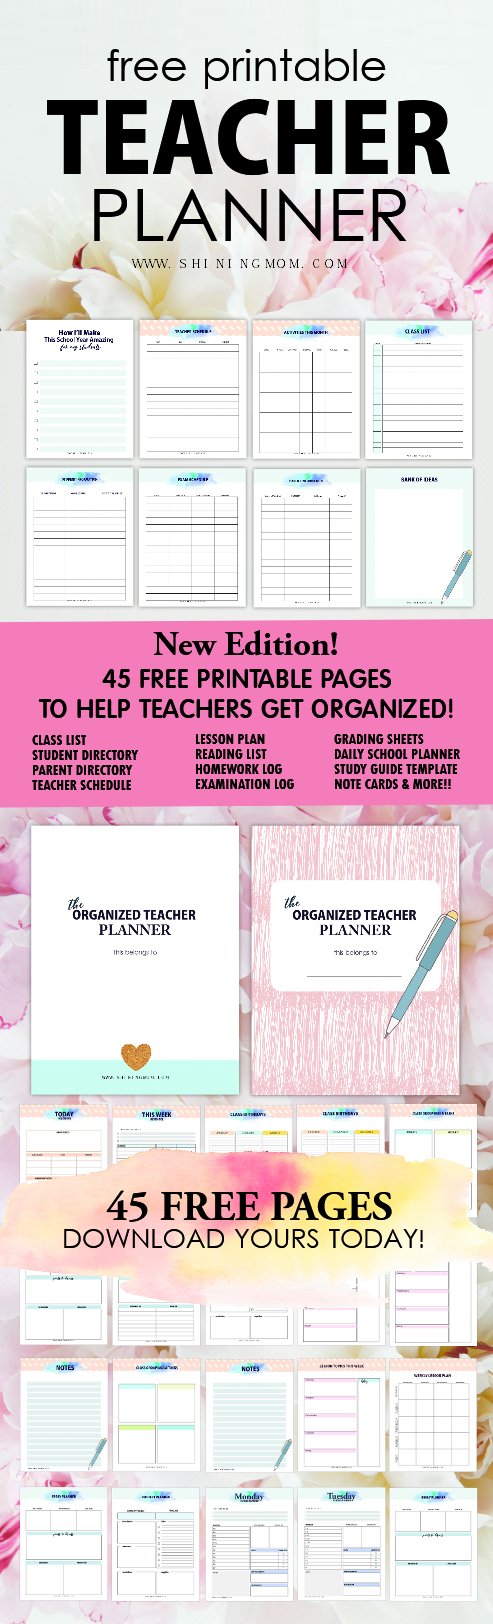 image regarding Printable Teacher Planner named Free of charge Printable Instructor Planner: 45+ College Setting up Templates!